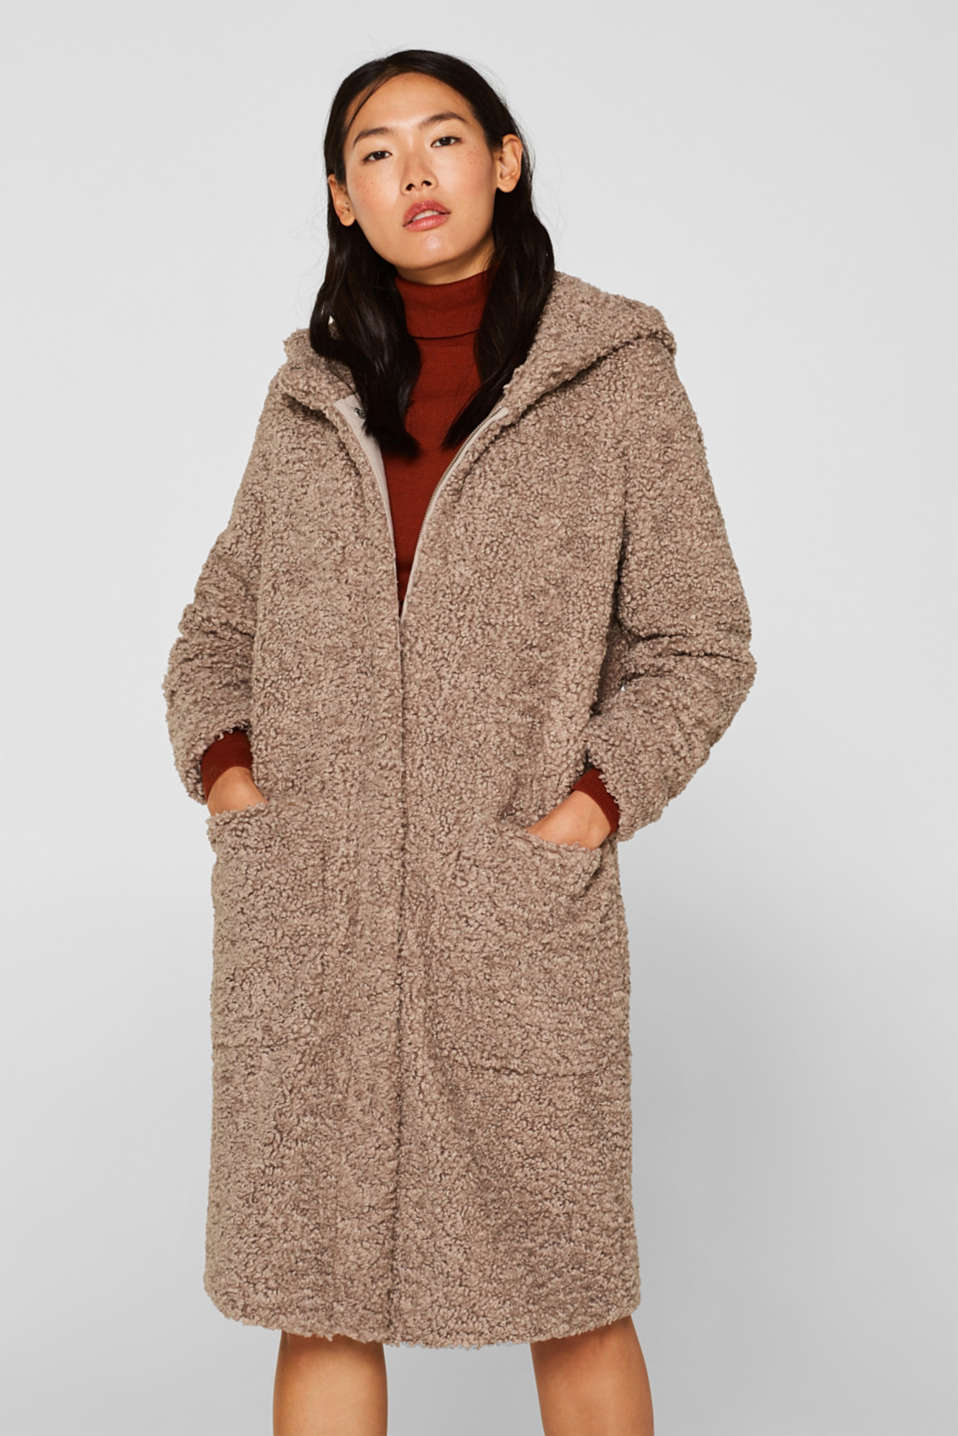 Esprit - Coat made of curled faux fur